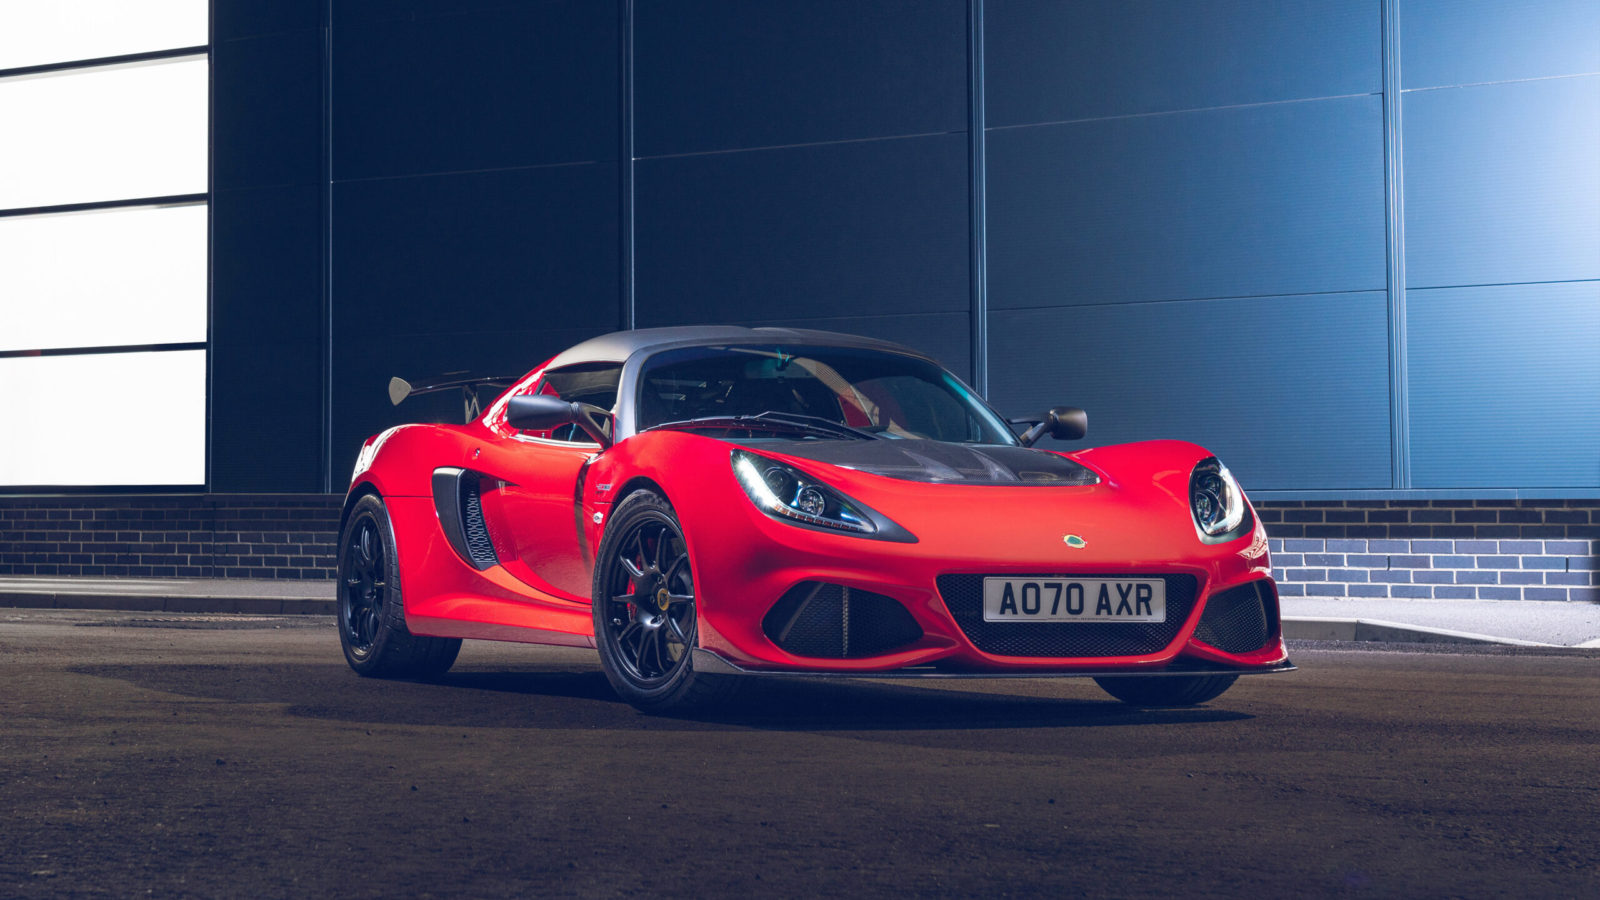 2021-lotus-exige-sport-420-final-edition-wallpapers